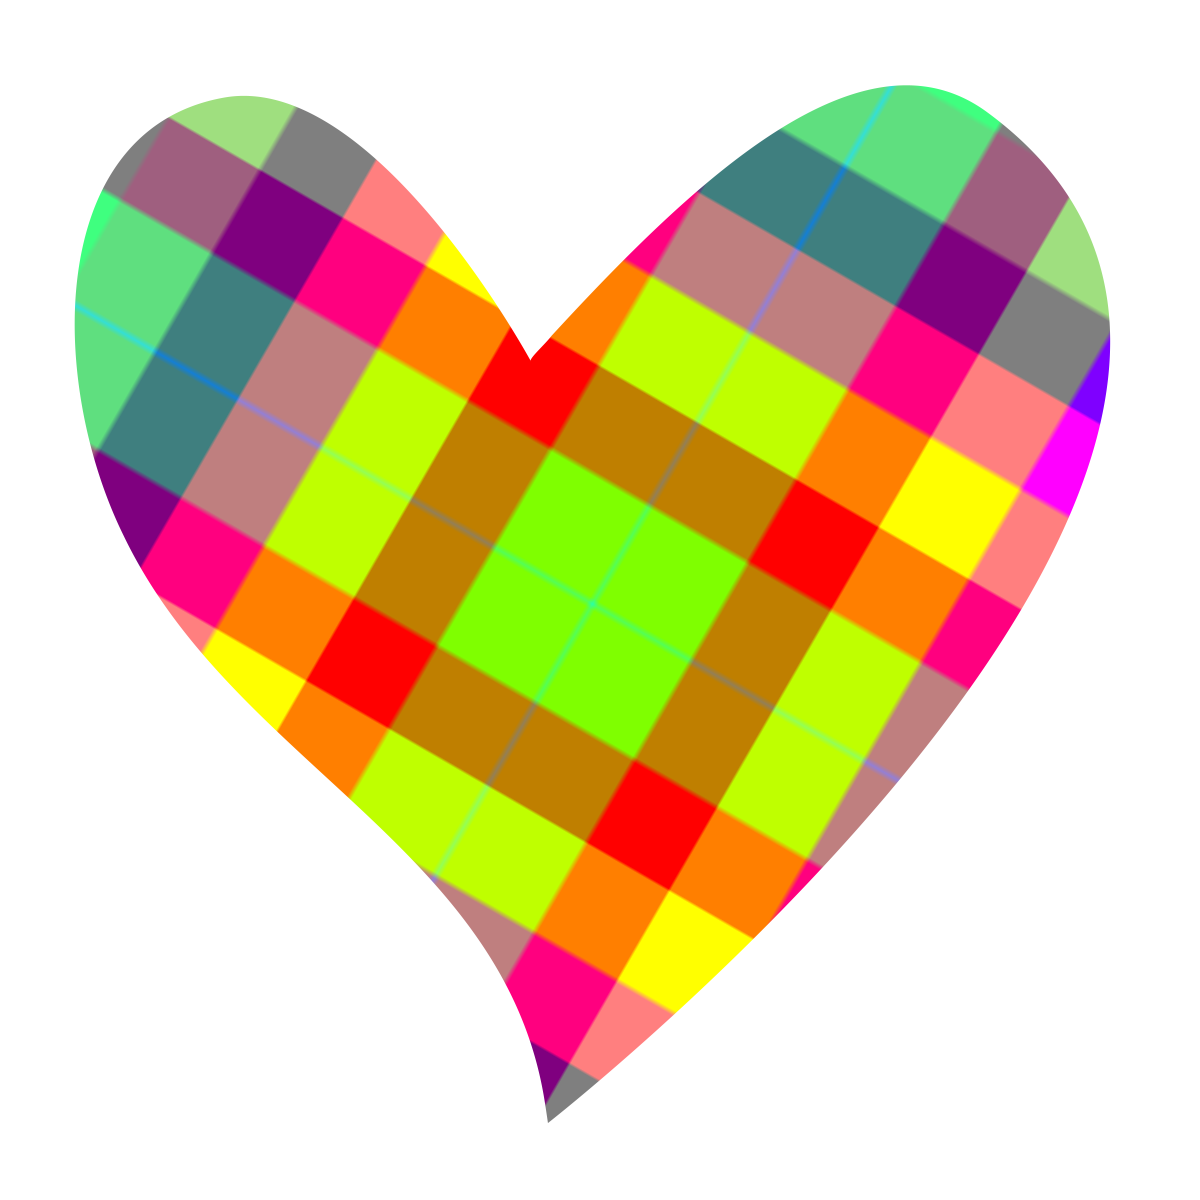 Shapes Of Hearts - ClipArt Best